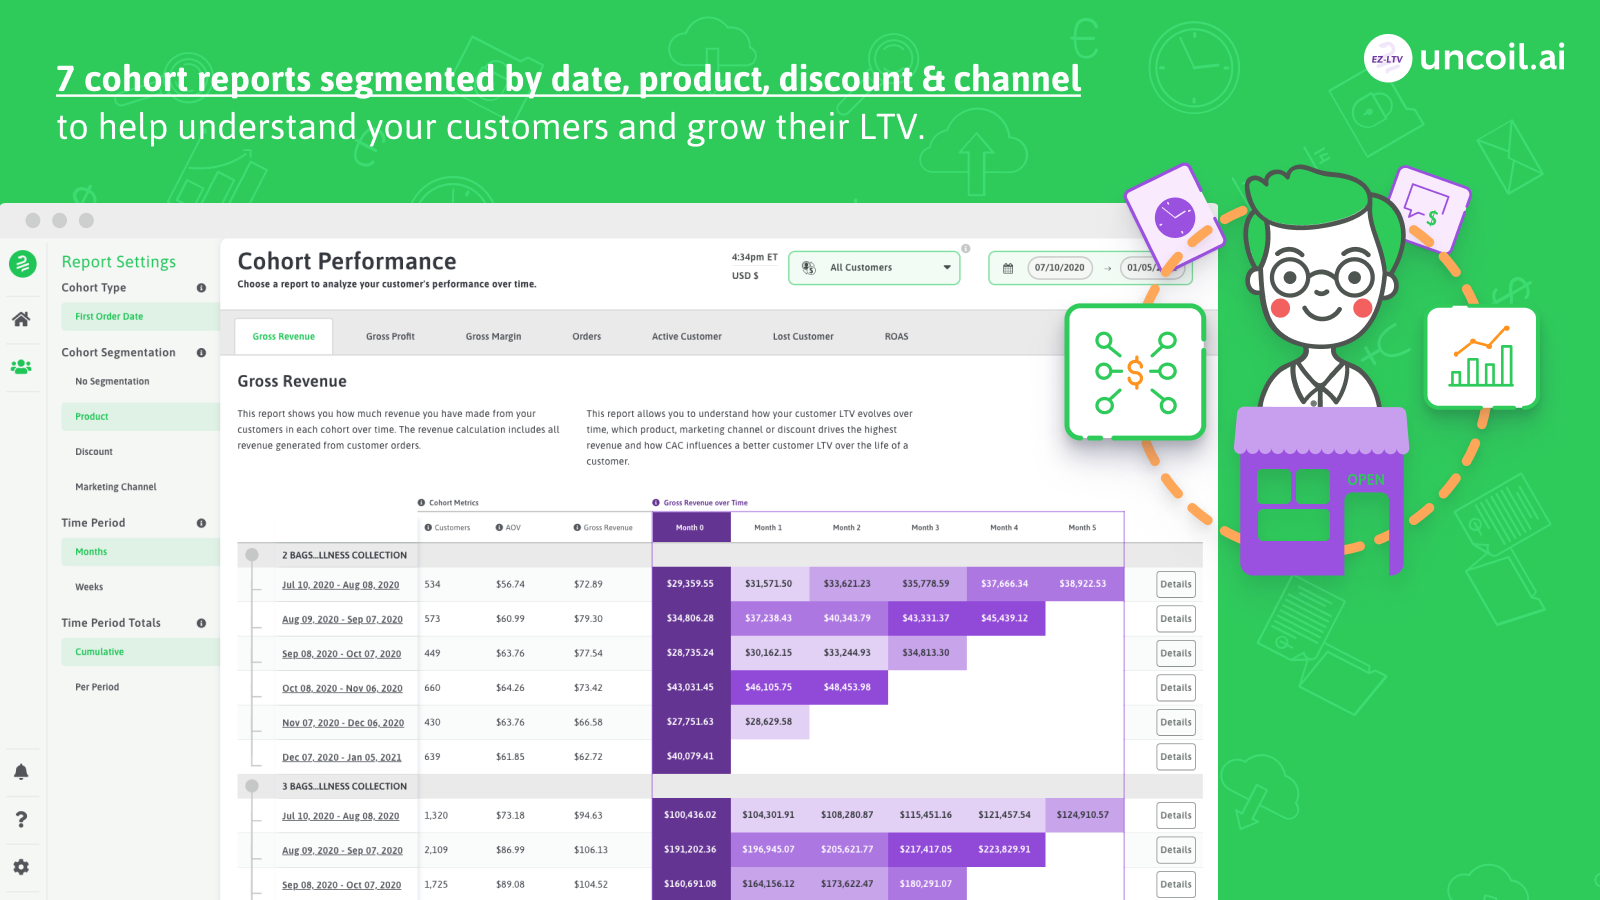 7 cohort reports segmented by date, product, discount & channel.